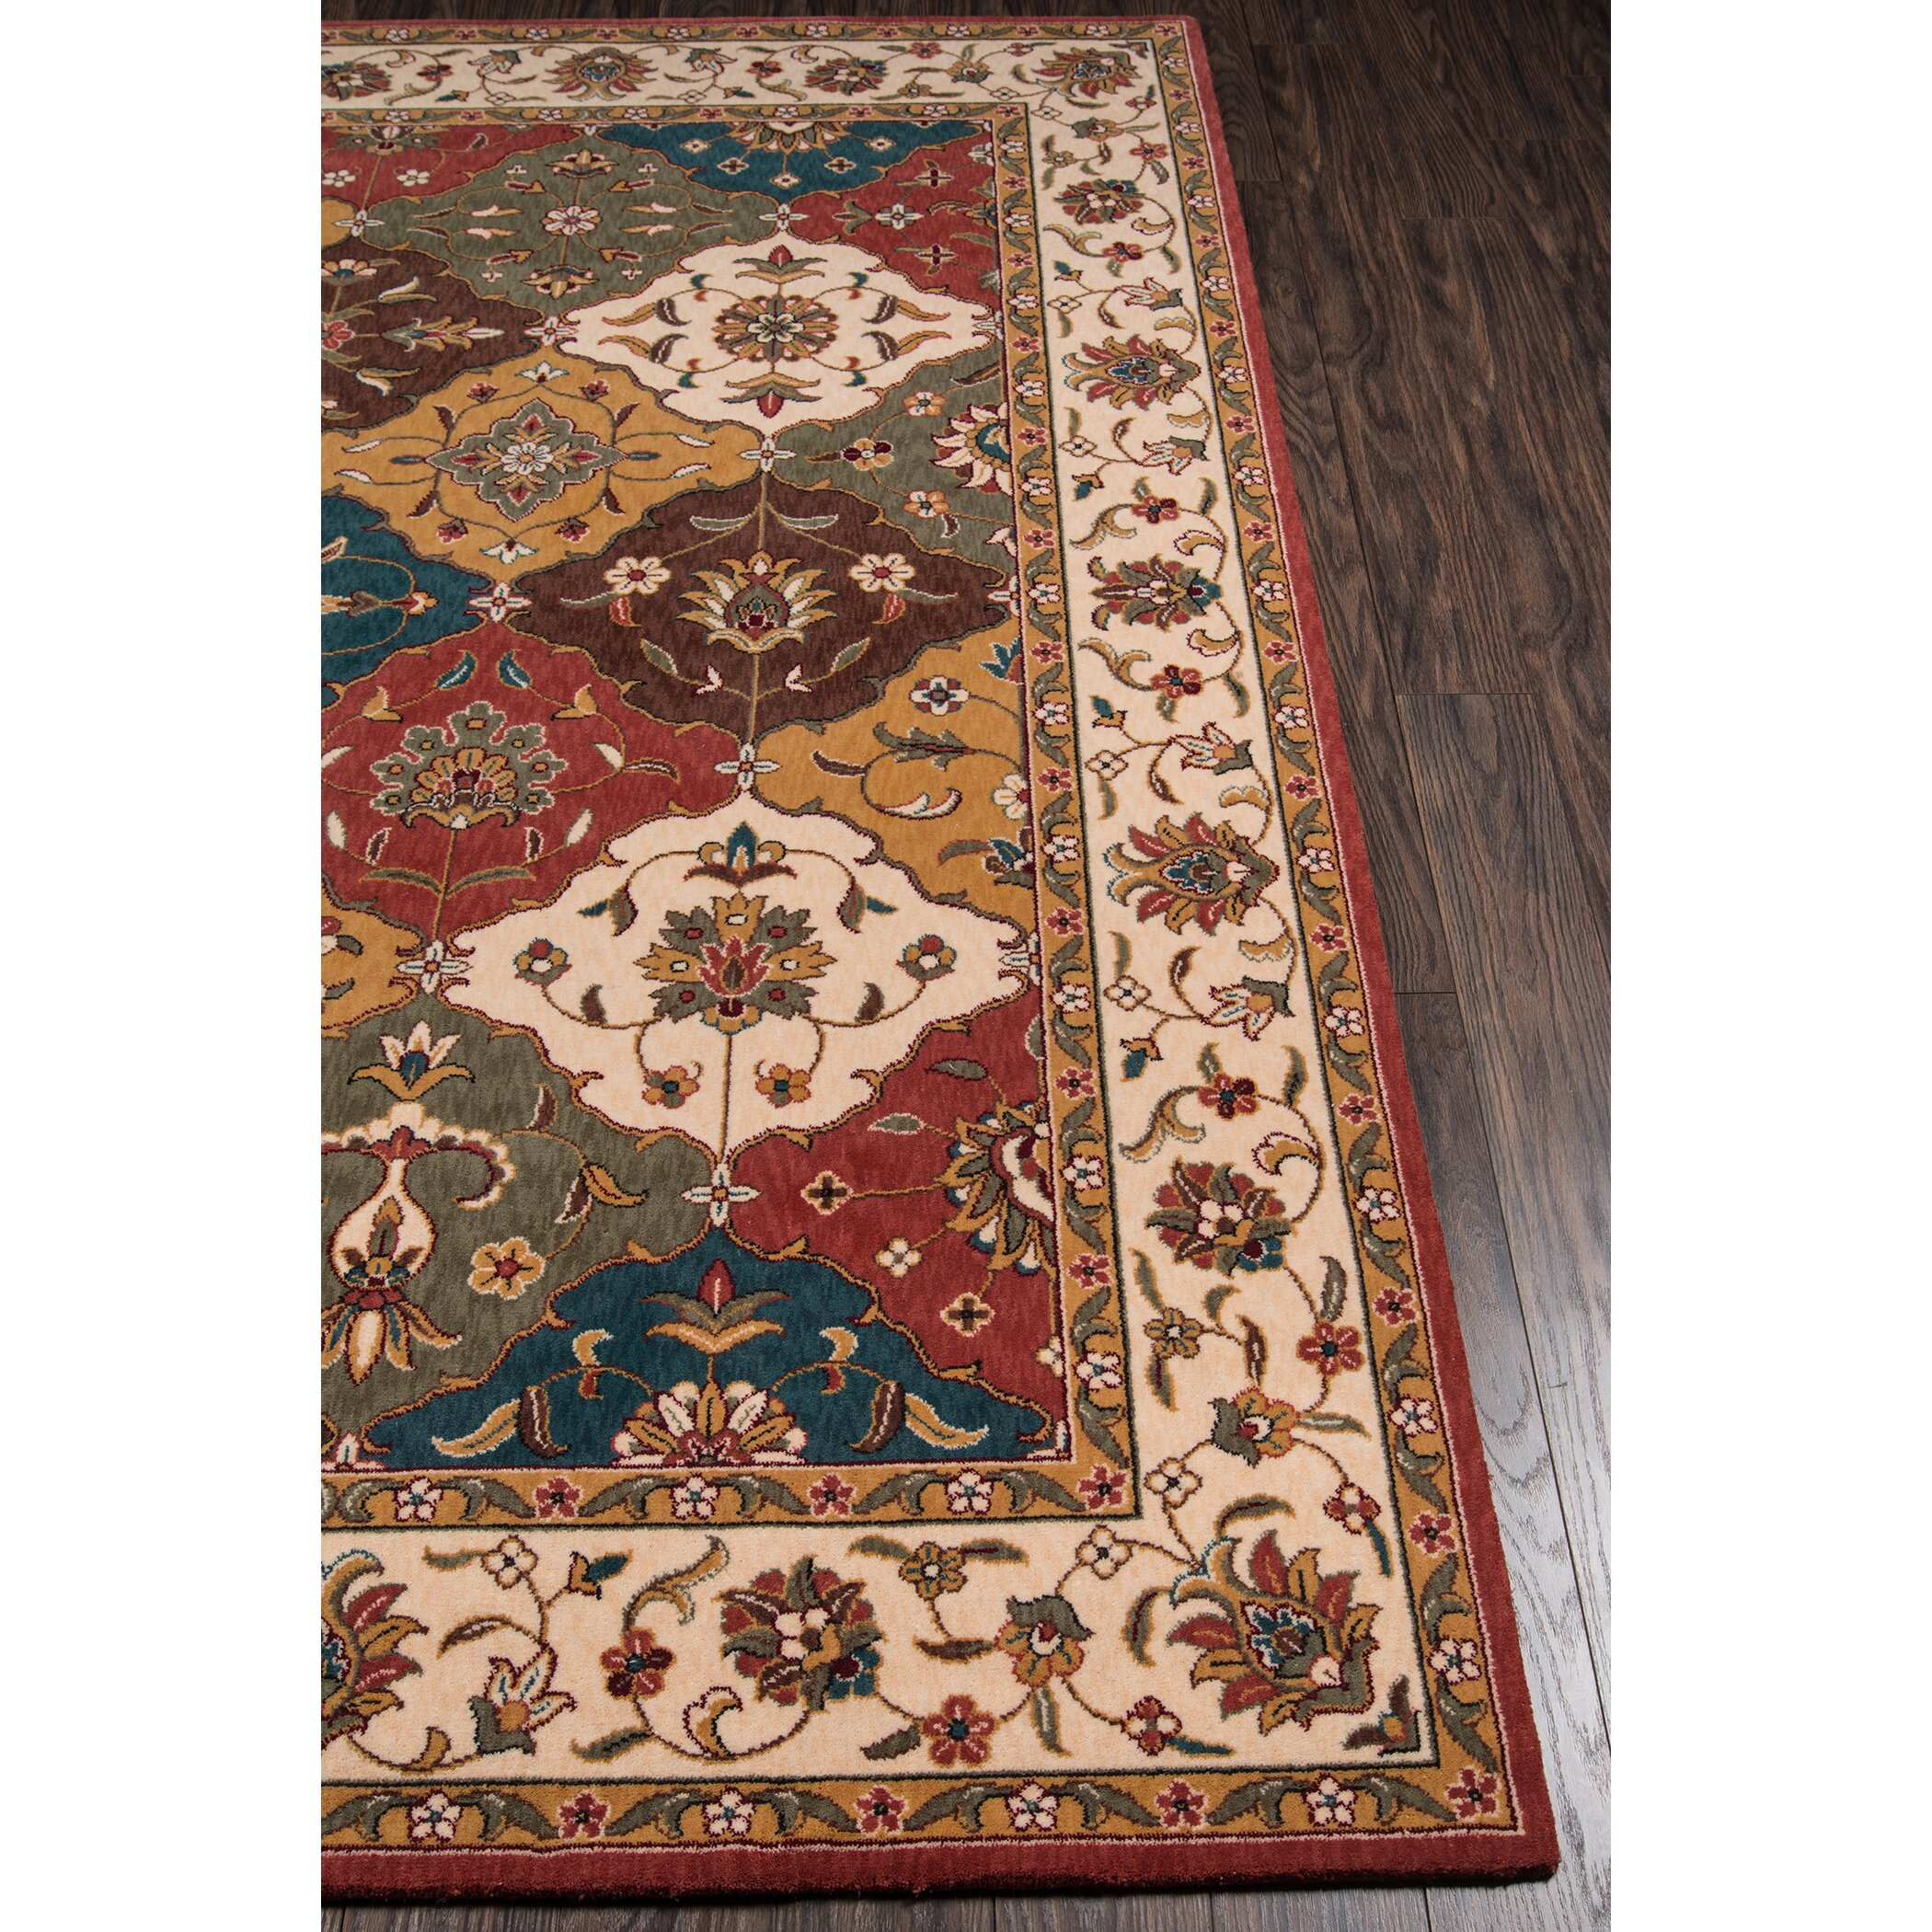 Momeni Persian Garden Red Orange Teal Area Rug Wayfair